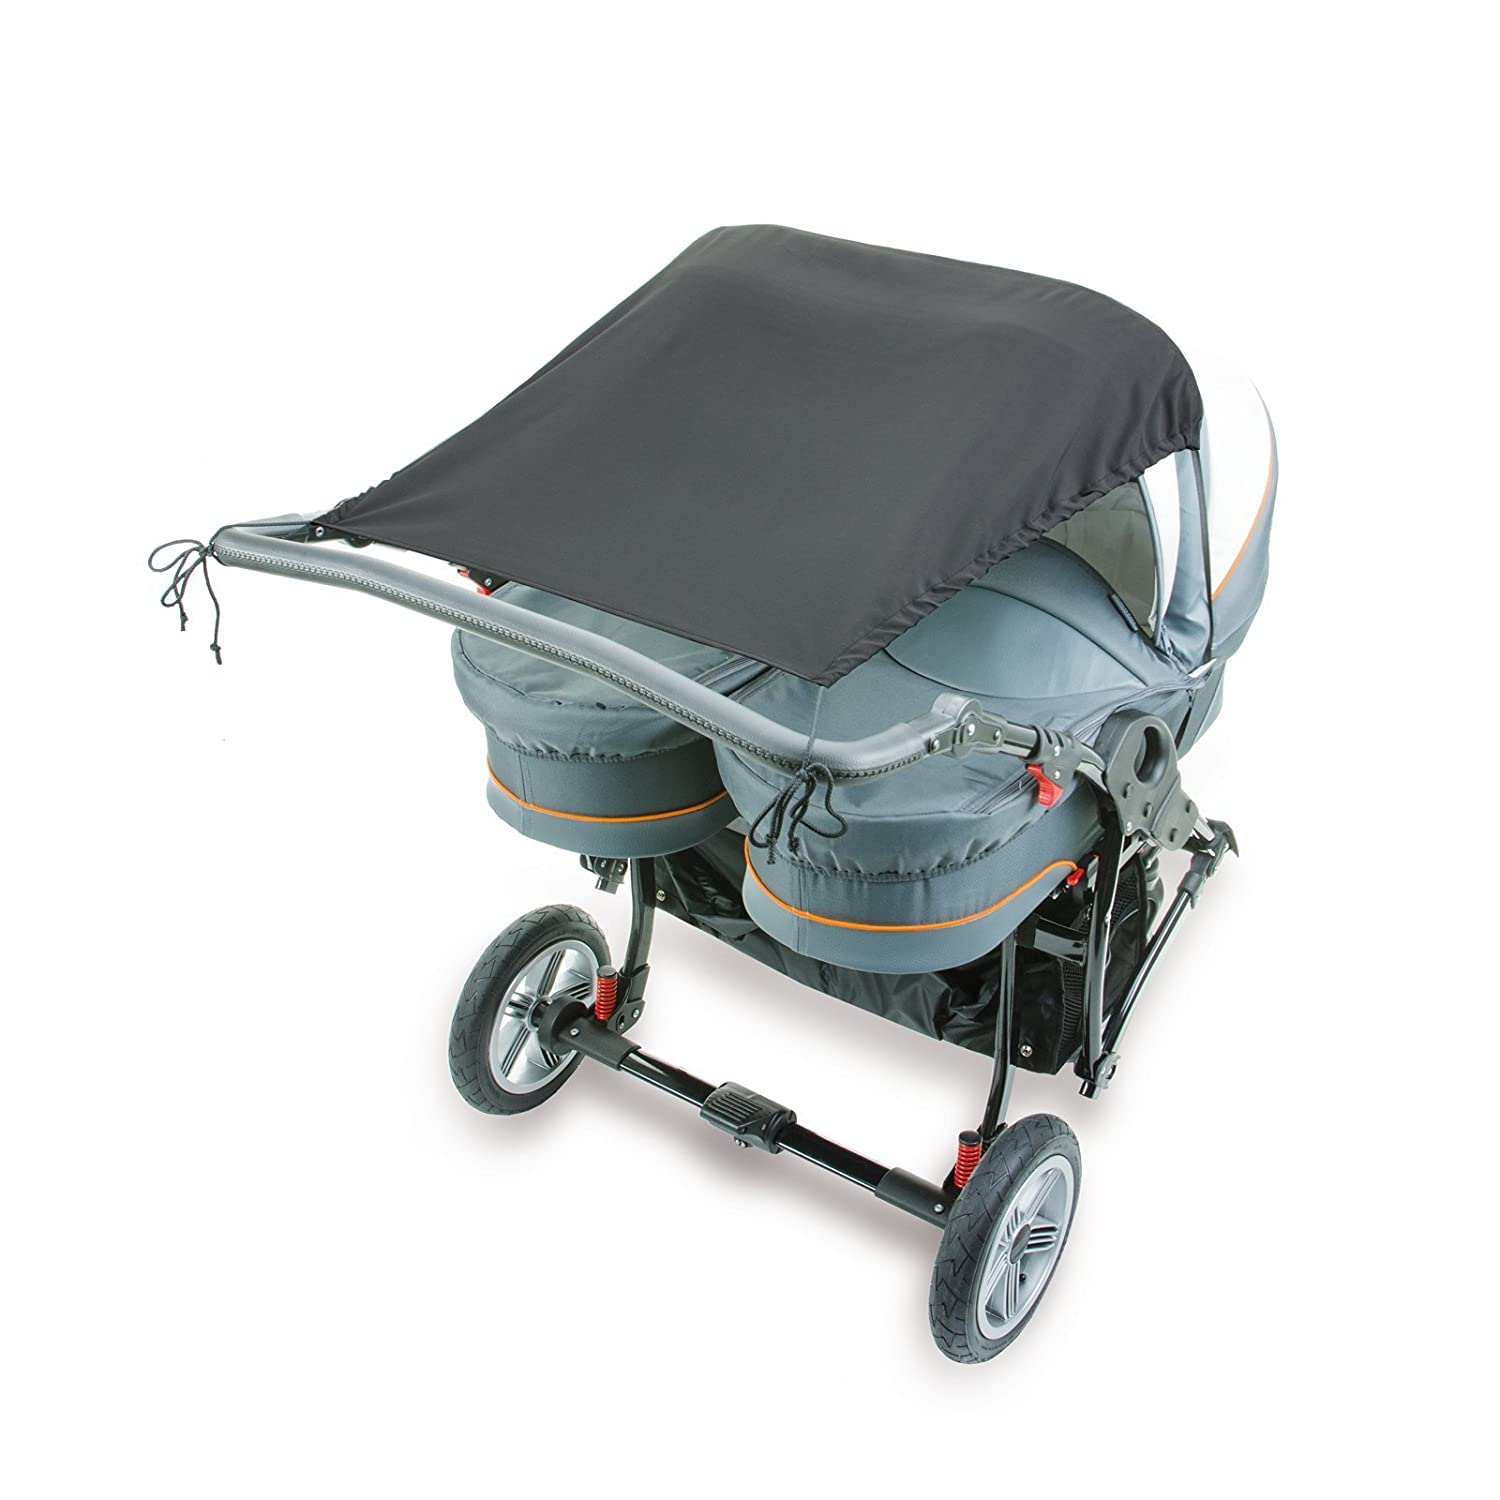 Diago UK Universal Twin Side By Side, Pram Awning Anthracite